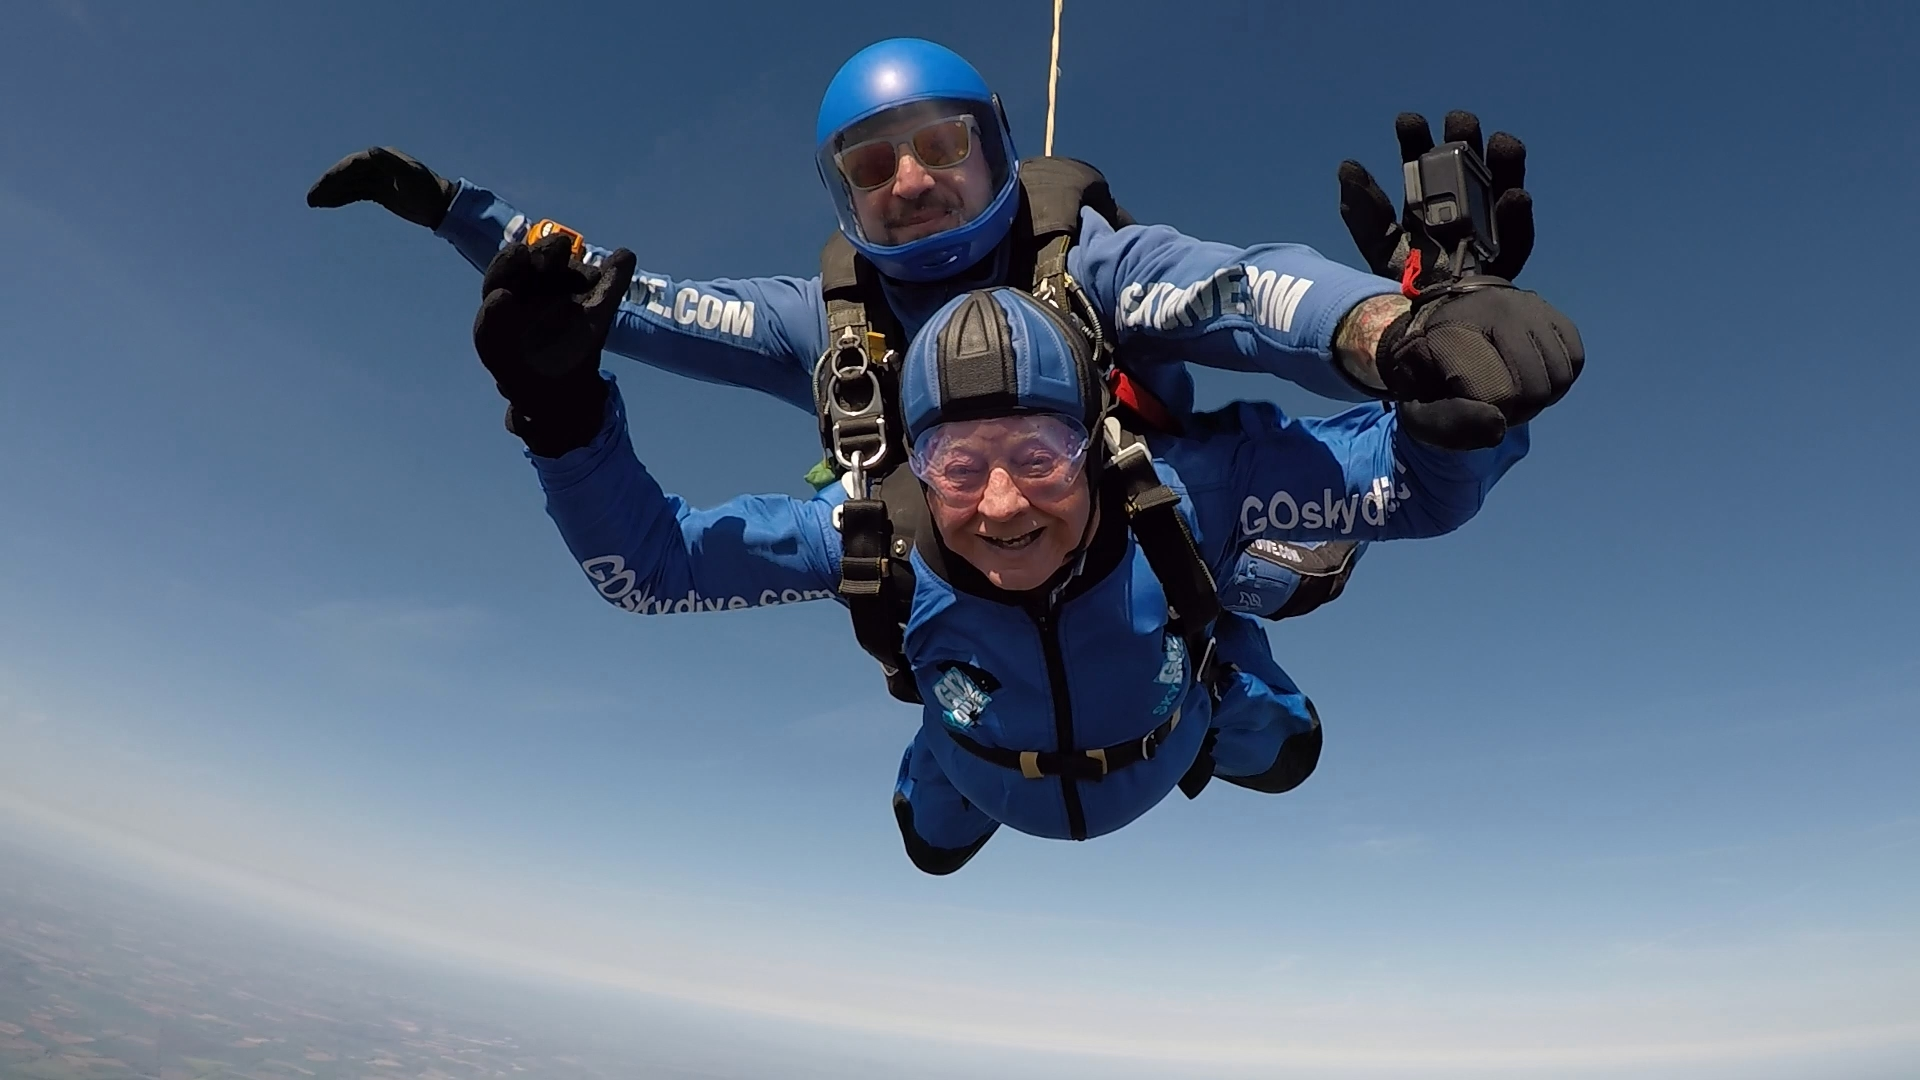 John Read during his tandem skydive                          Picture by GoSkydive